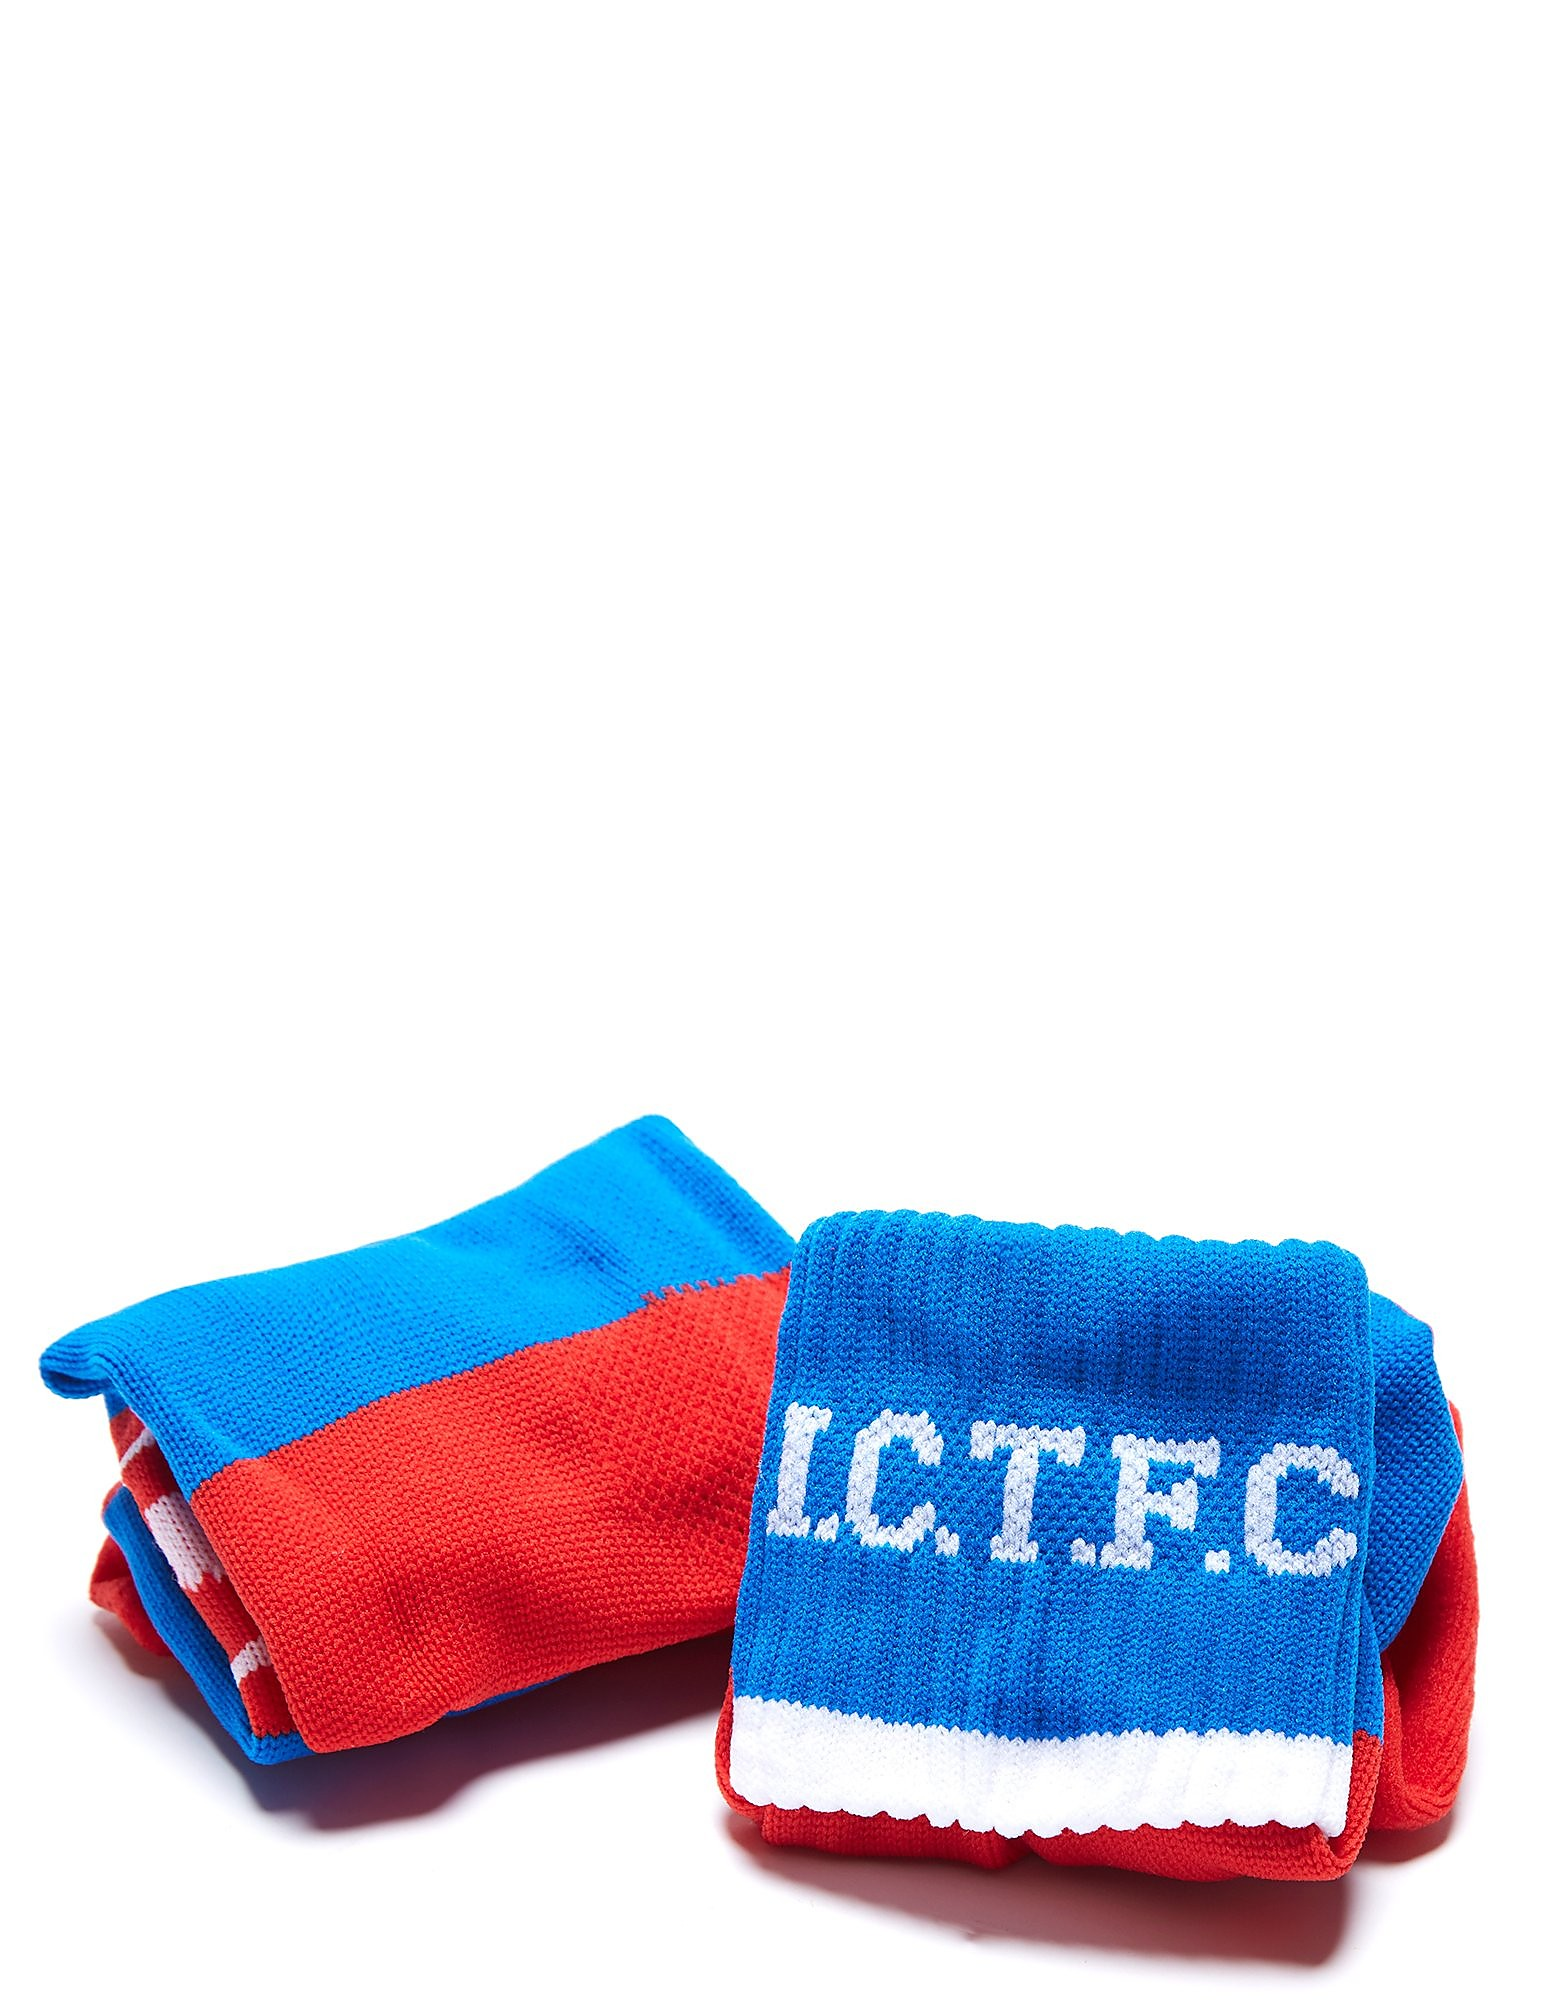 Carbrini Inverness CT 2016/17 Home Socks